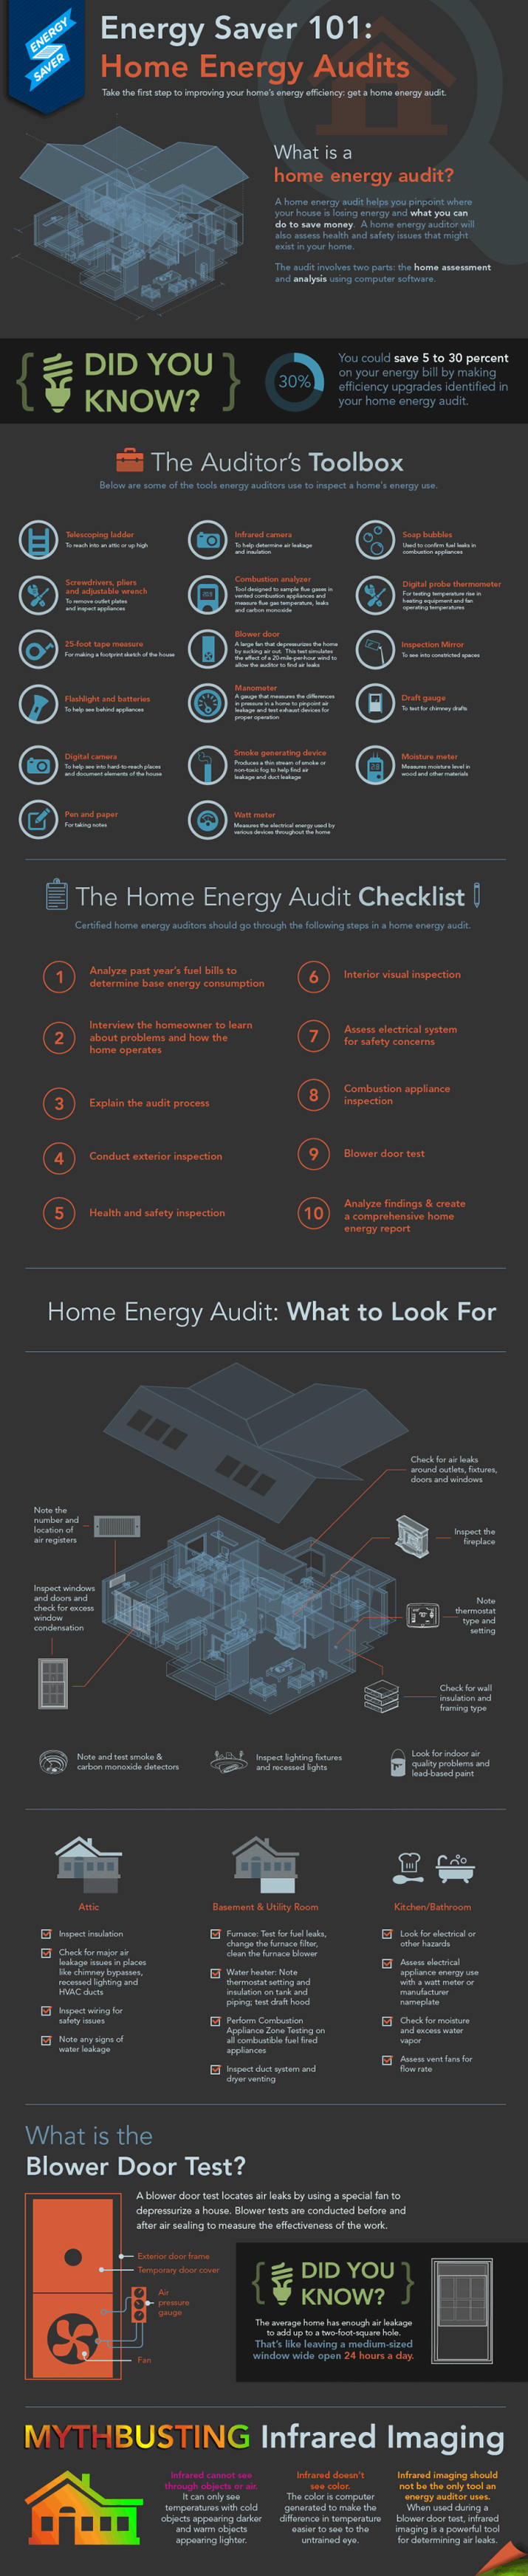 Understanding Home Energy Audits